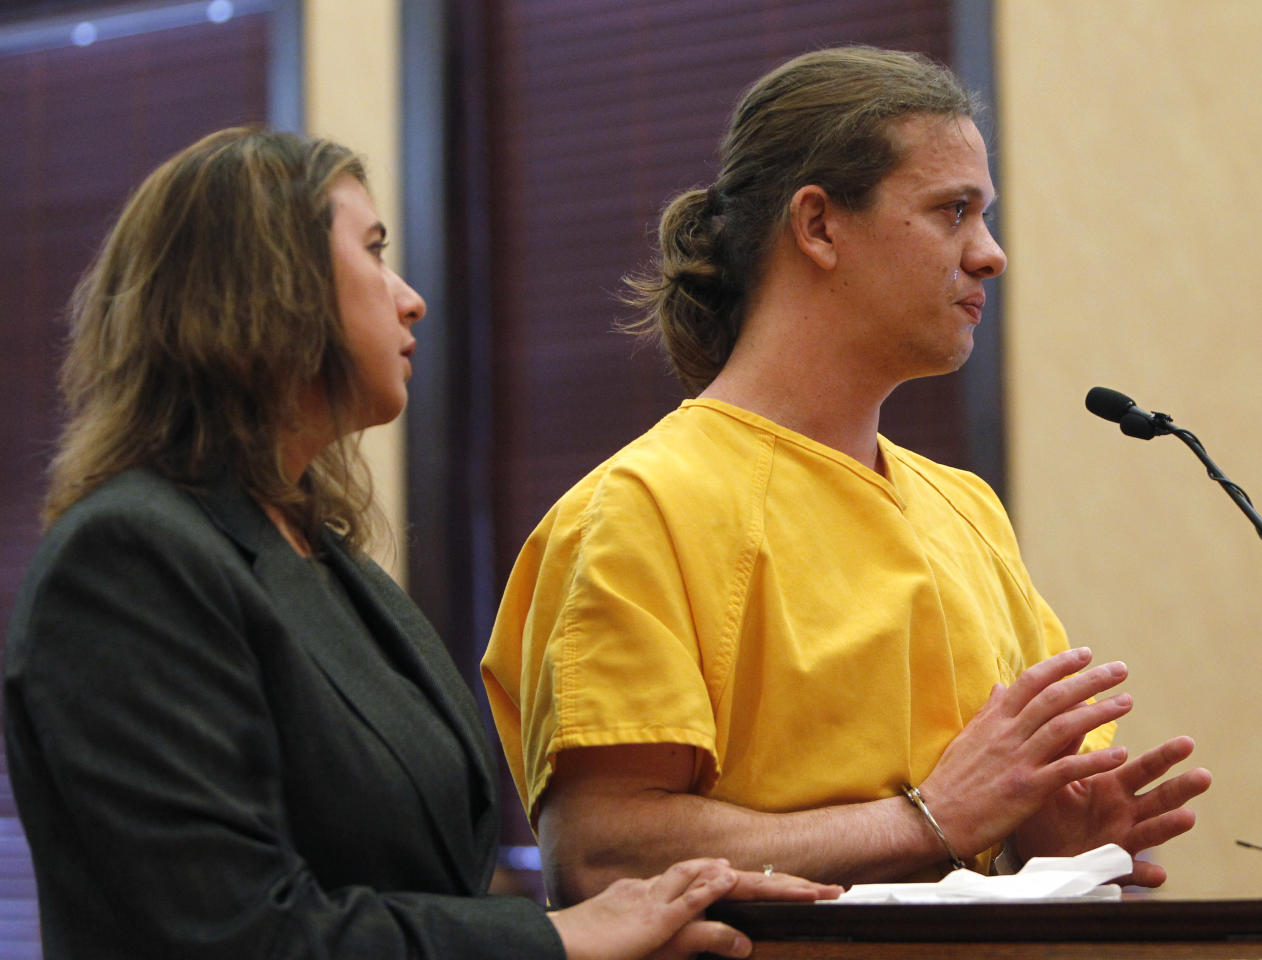 Dylan Stanley Dougherty, 27, pleads for a lighter sentence as he stands with his attorney Cobea Becker, left, in district court where he was sentenced to 32 years in prison on charges stemming from the shootout and capture of him and his brother and sister in Colorado in Walsenburg, Colo., on Monday, April 30, 2012. All three siblings were sentenced on Monday. Dougherty's sister Lee Grace Dougherty received a 24-year prison term, while his brother Ryan Dougherty, 22, was sentenced to 18 years in prison. The three are accused of shooting at a police officer and staging a daring bank robbery in a cross-country crime spree that included Georgia and Florida. The manhunt for them ended after an Aug. 10 freeway chase and shootout with police in southern Colorado. (AP Photo/Ed Andrieski)